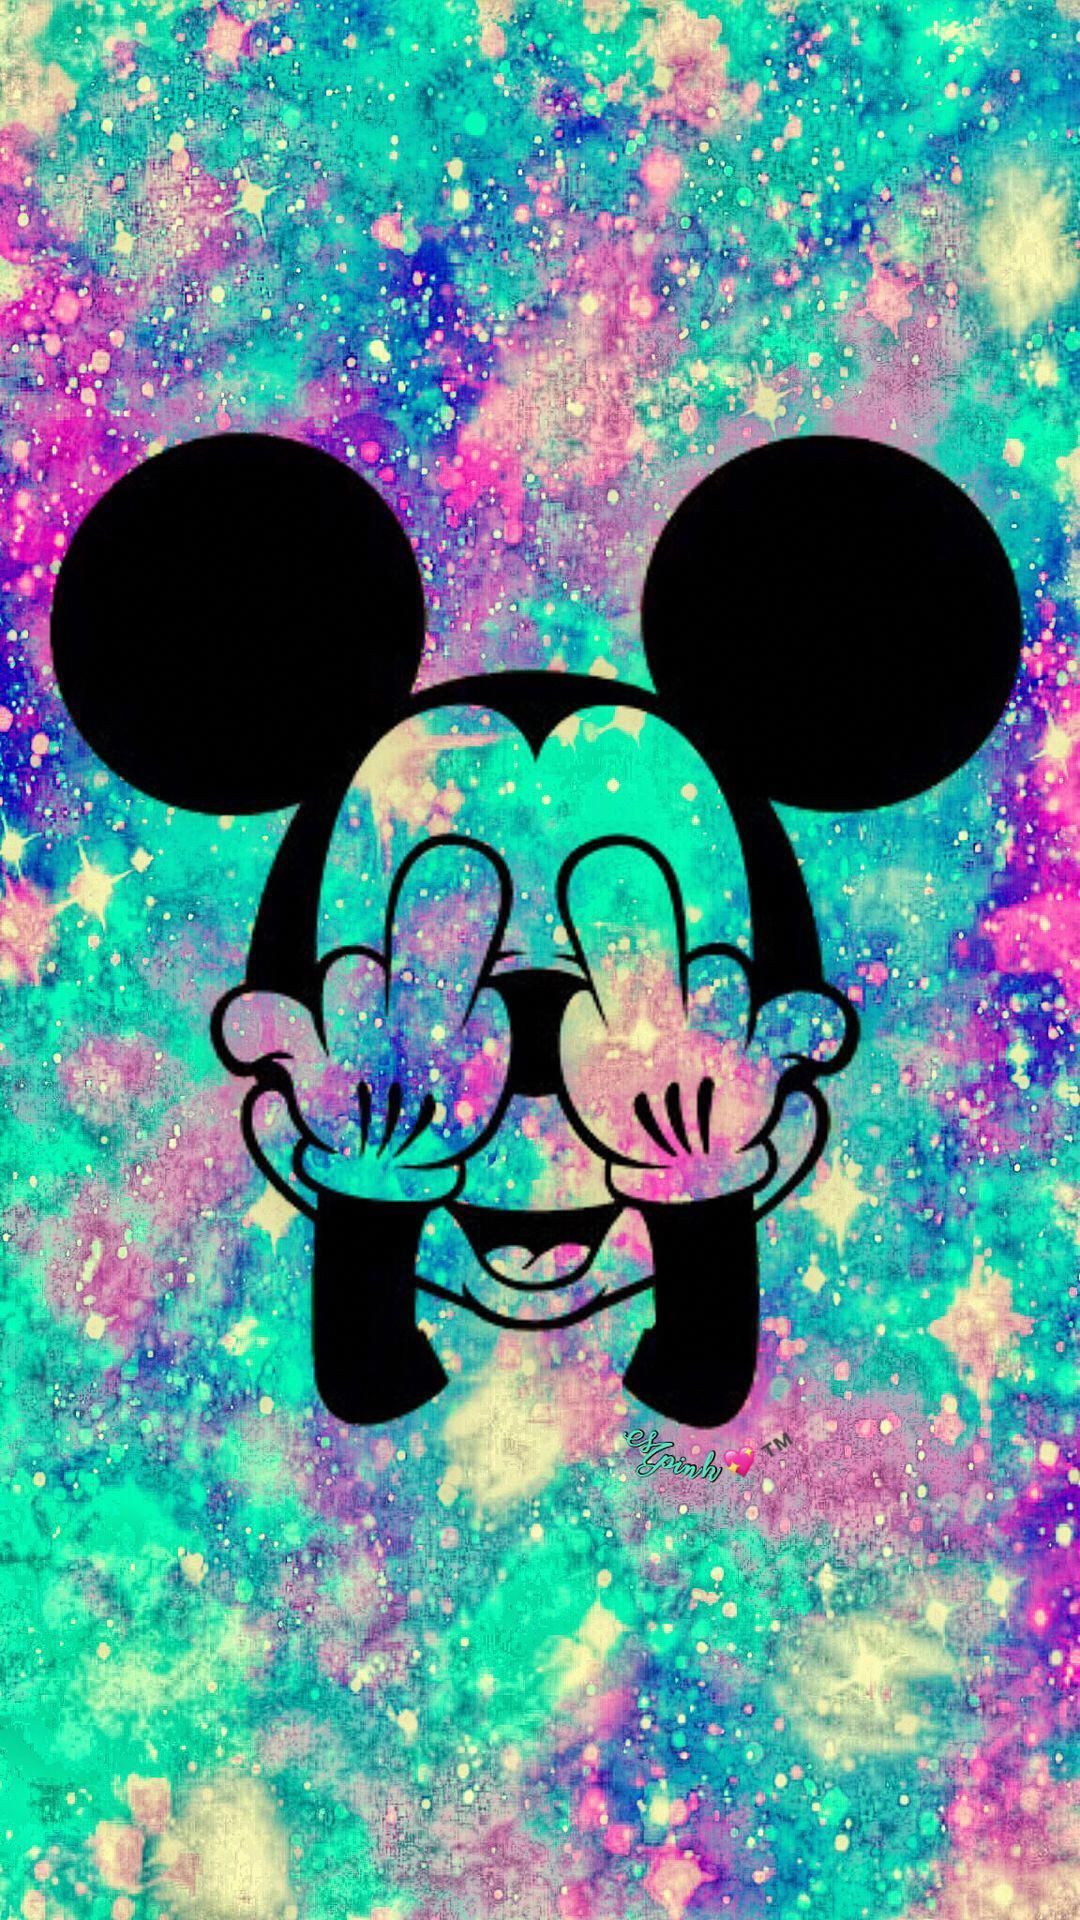 Image Result For Lock Screen Cute Stitch Wallpapers Iphonex Hipster Wallpaper Iphone Wallpaper Hipster Wallpaper Iphone Cute